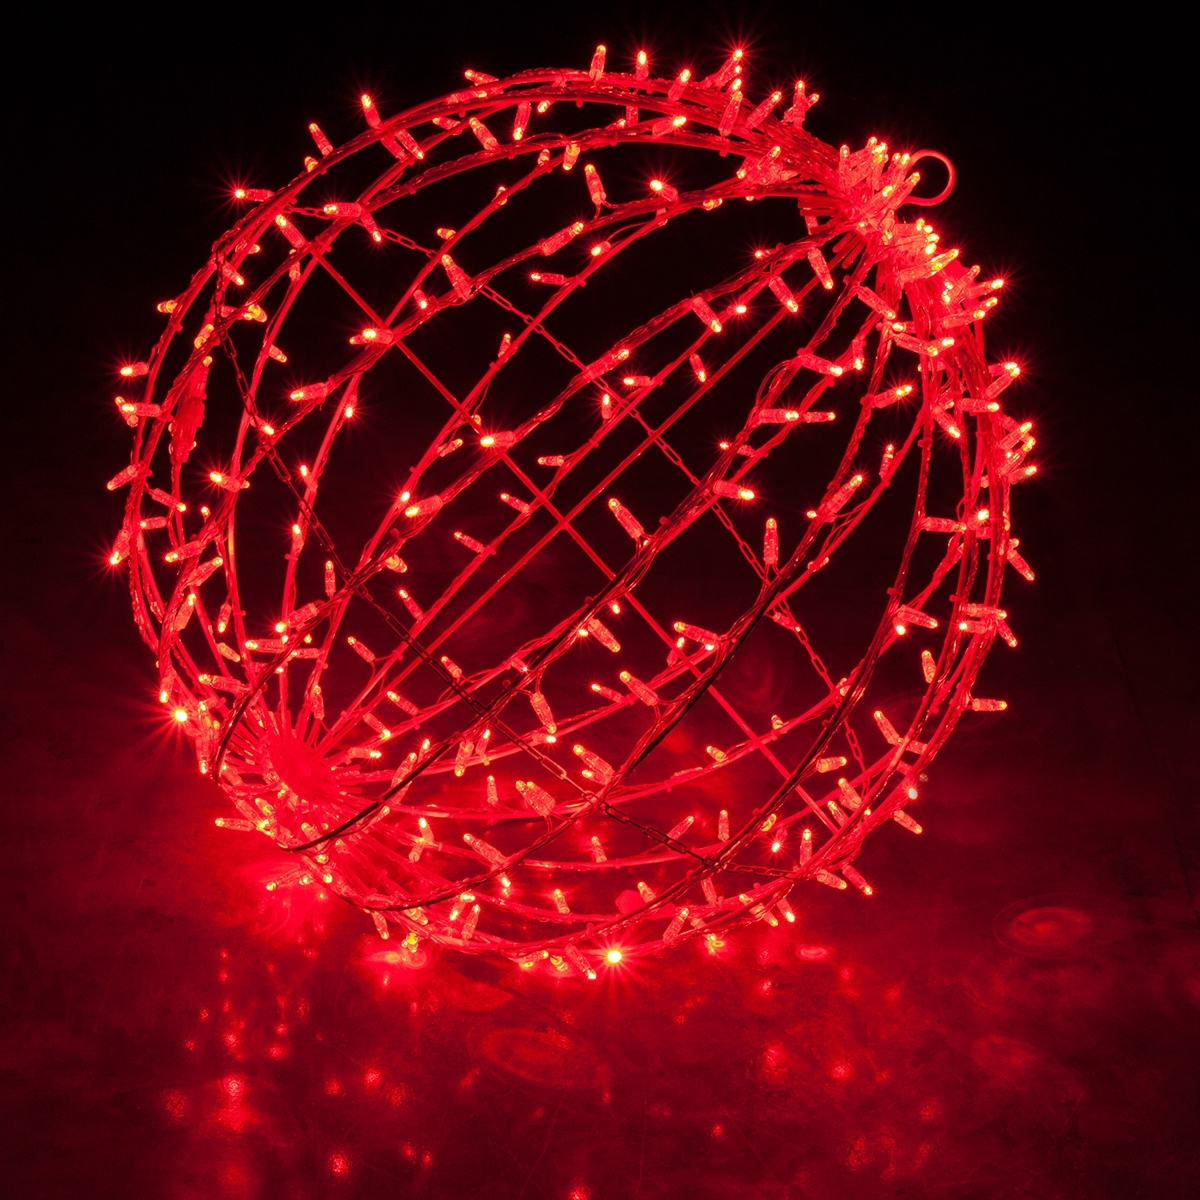 Red Led, Commercial Mega Sphere Christmas Light Ball, Fold Flat Intended For Outdoor Hanging Christmas Light Balls (View 15 of 15)